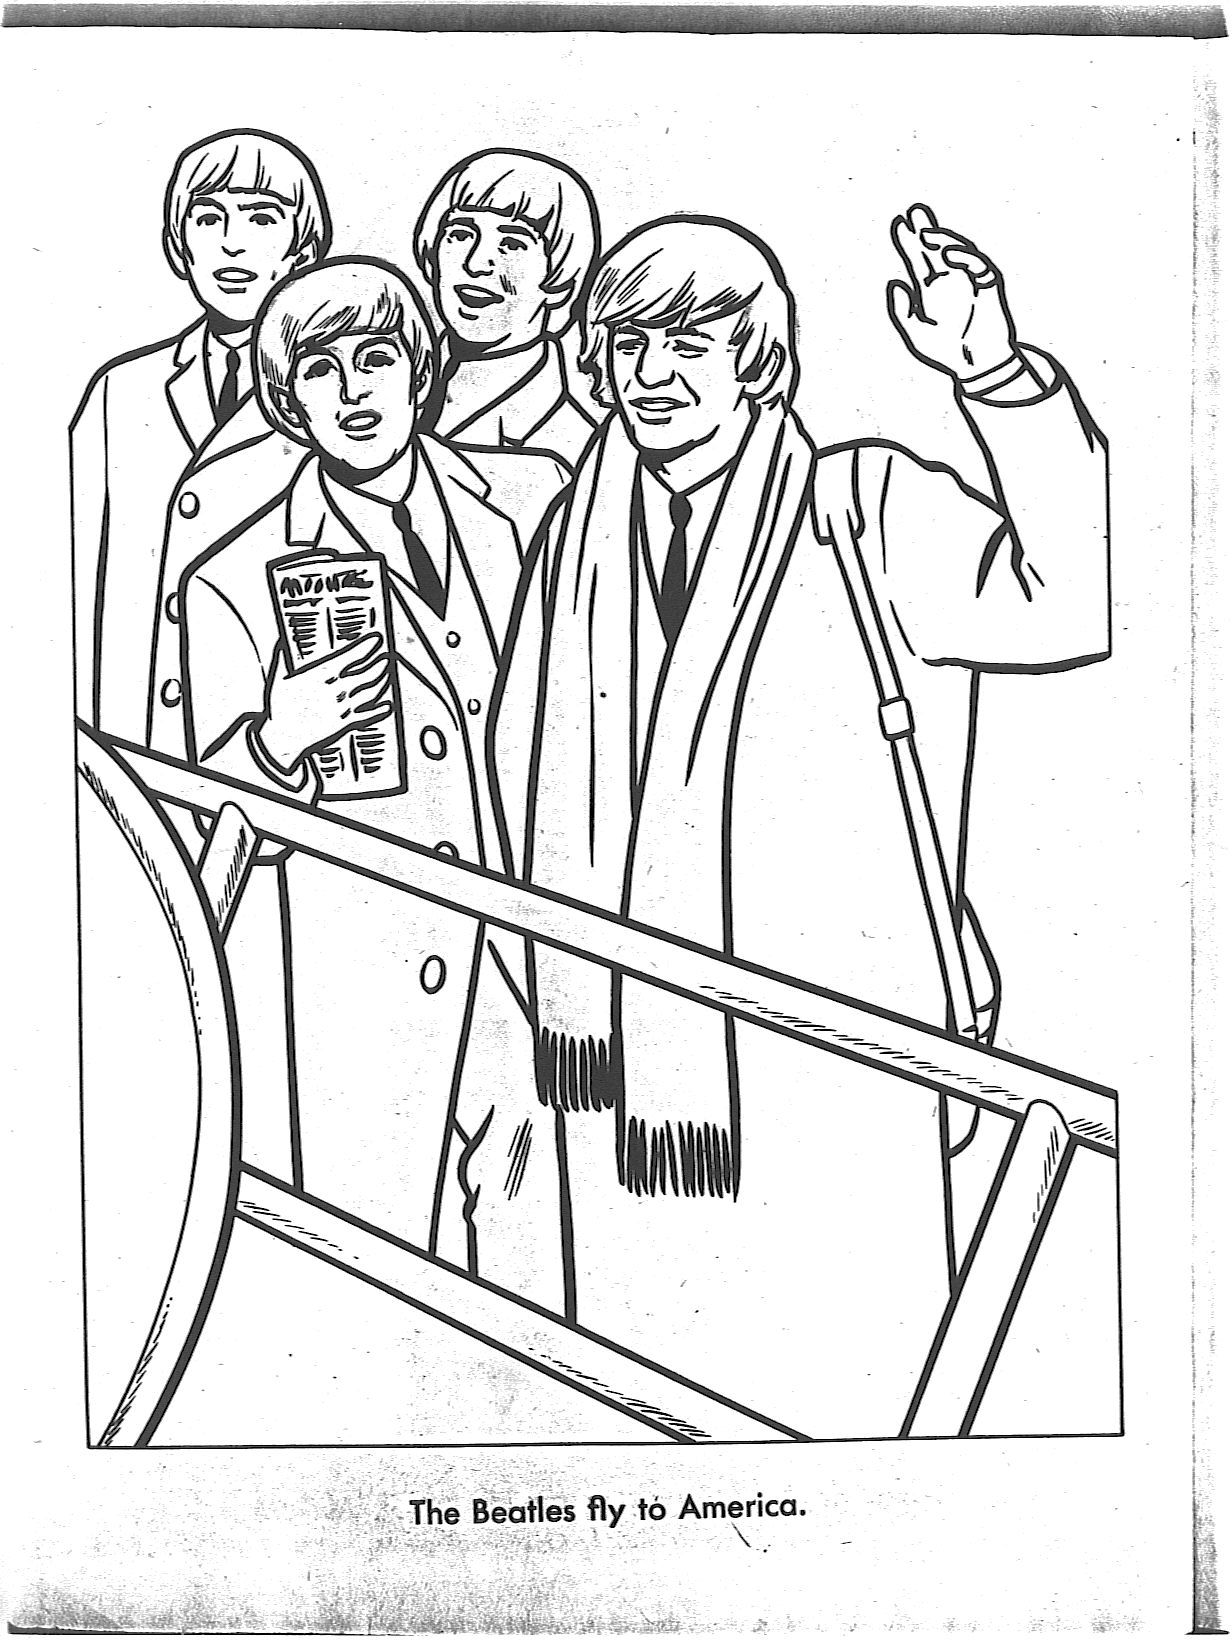 beatle coloring pages =) are you kidding me?! @katy